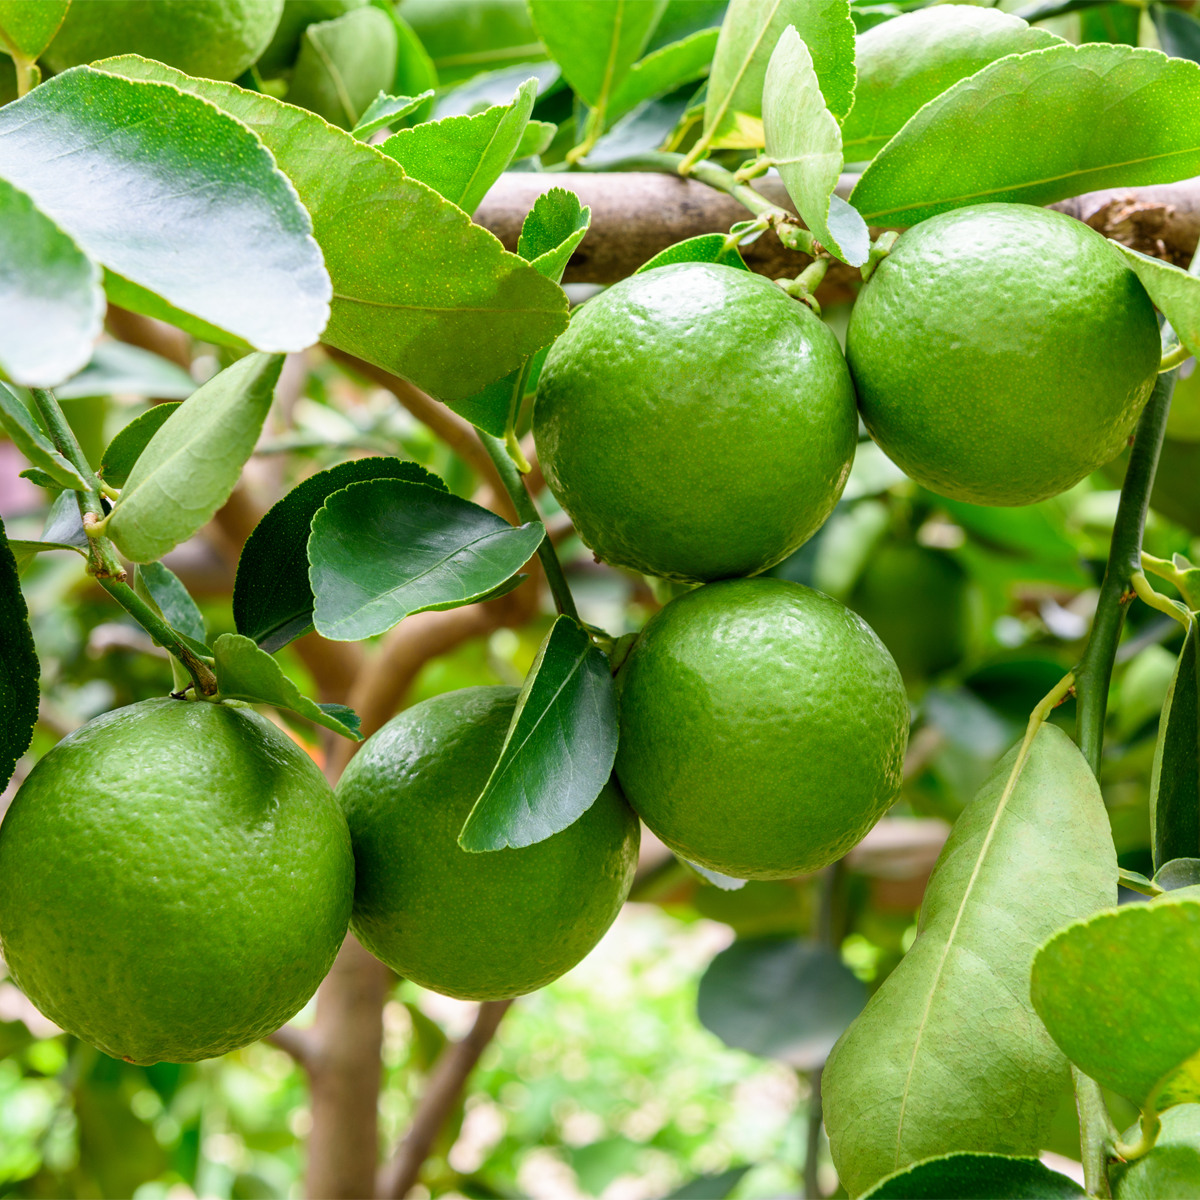 Persian_Bearss_Lime_Tree_Drop_Shipper_Four_Winds_Size_1_Gallon_Age_1_Year